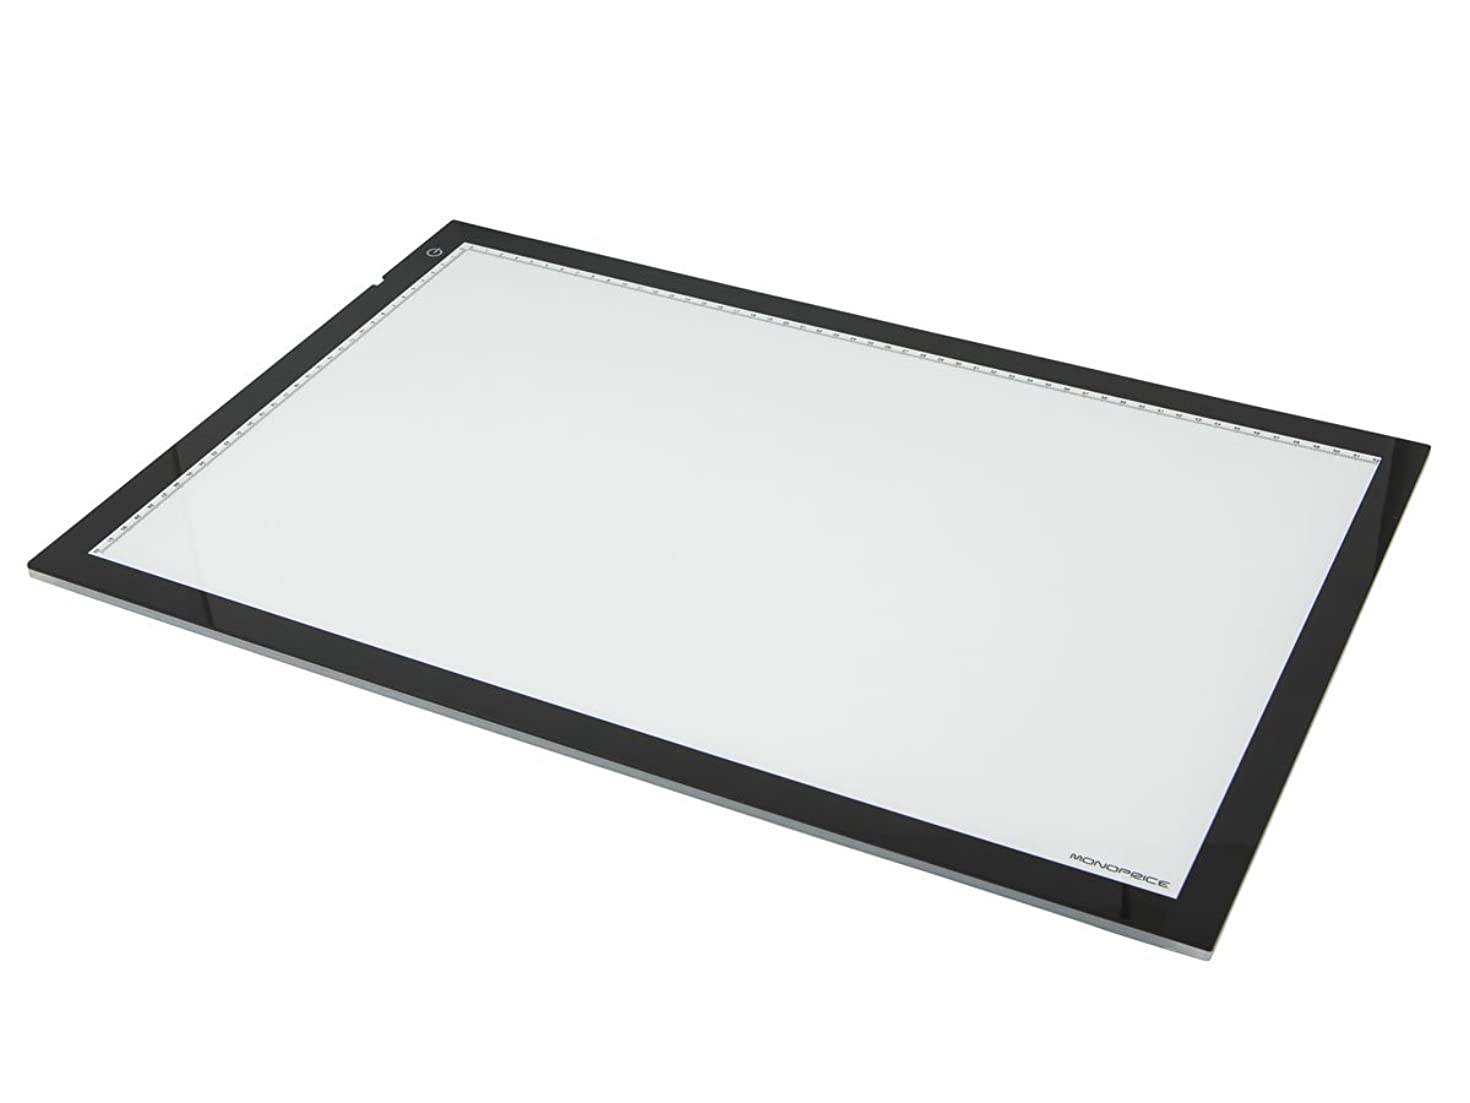 Monoprice Ultra-thin Light Box for Artists, Designers and Photographers - Large 24.5-inch - (112085)